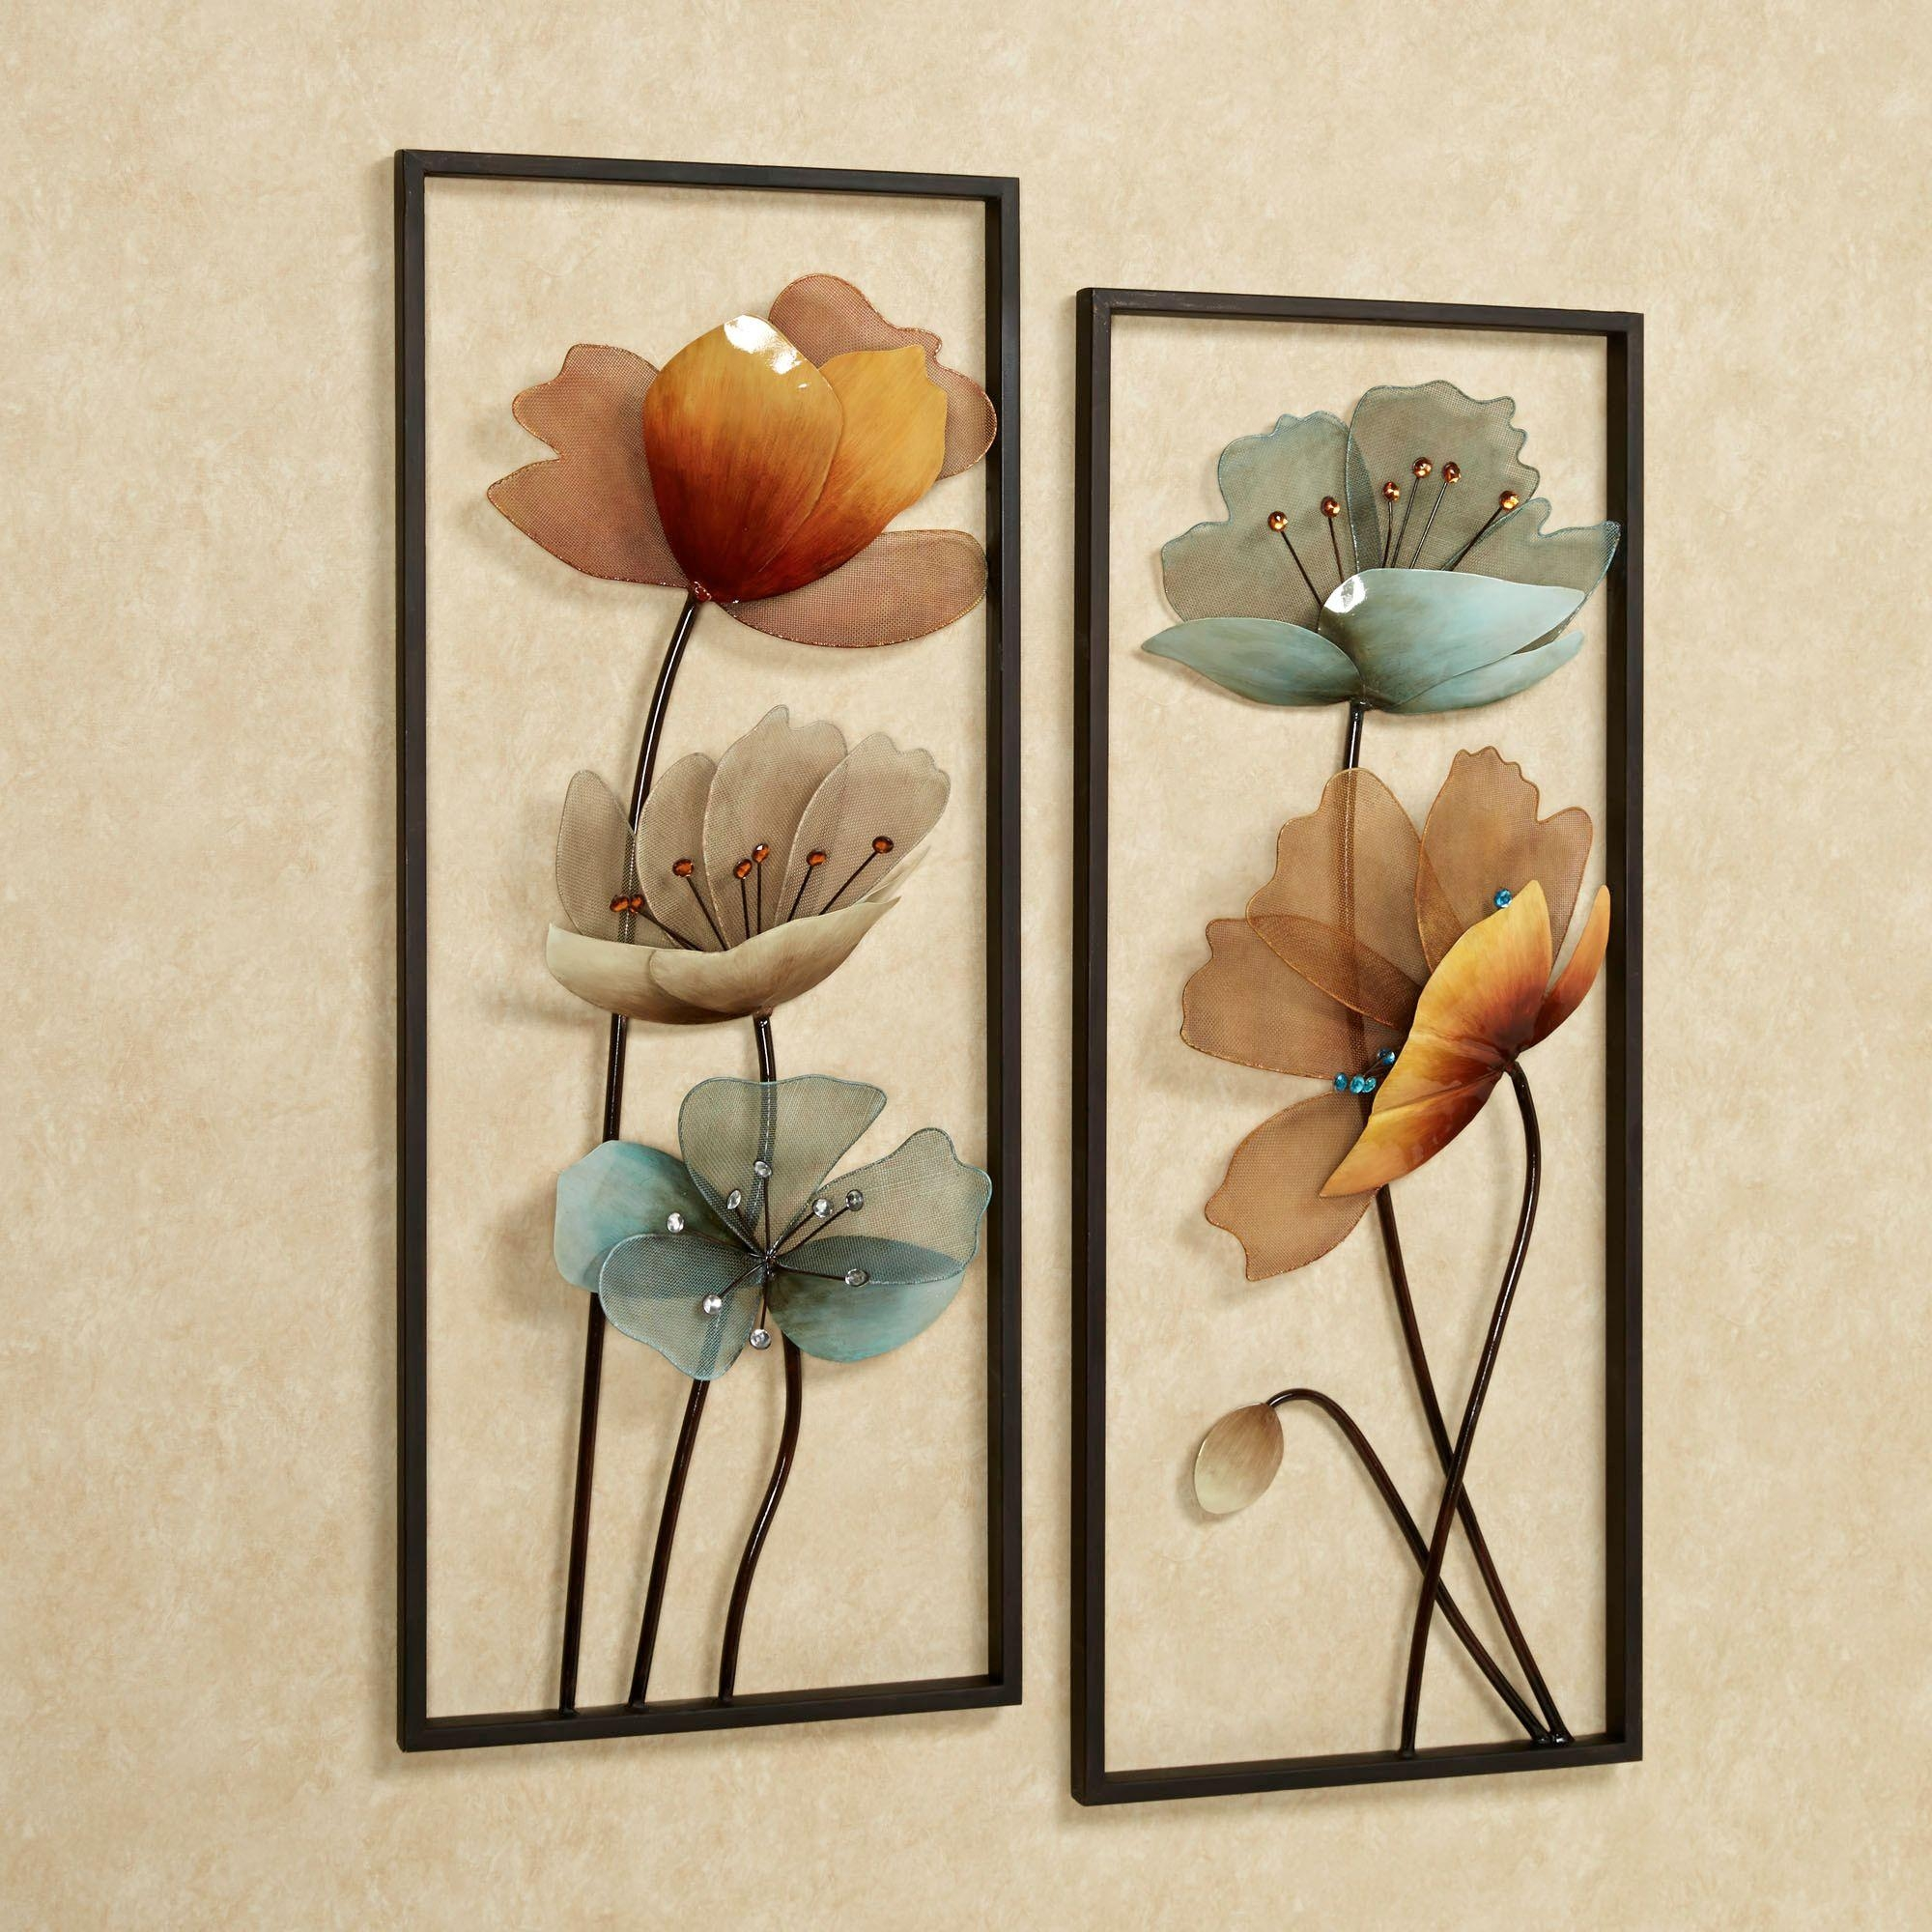 Enchanting Decorative Metal Wall Decor Decorative Metal Wall Art Inside Metal Art For Wall Hangings (Image 4 of 20)